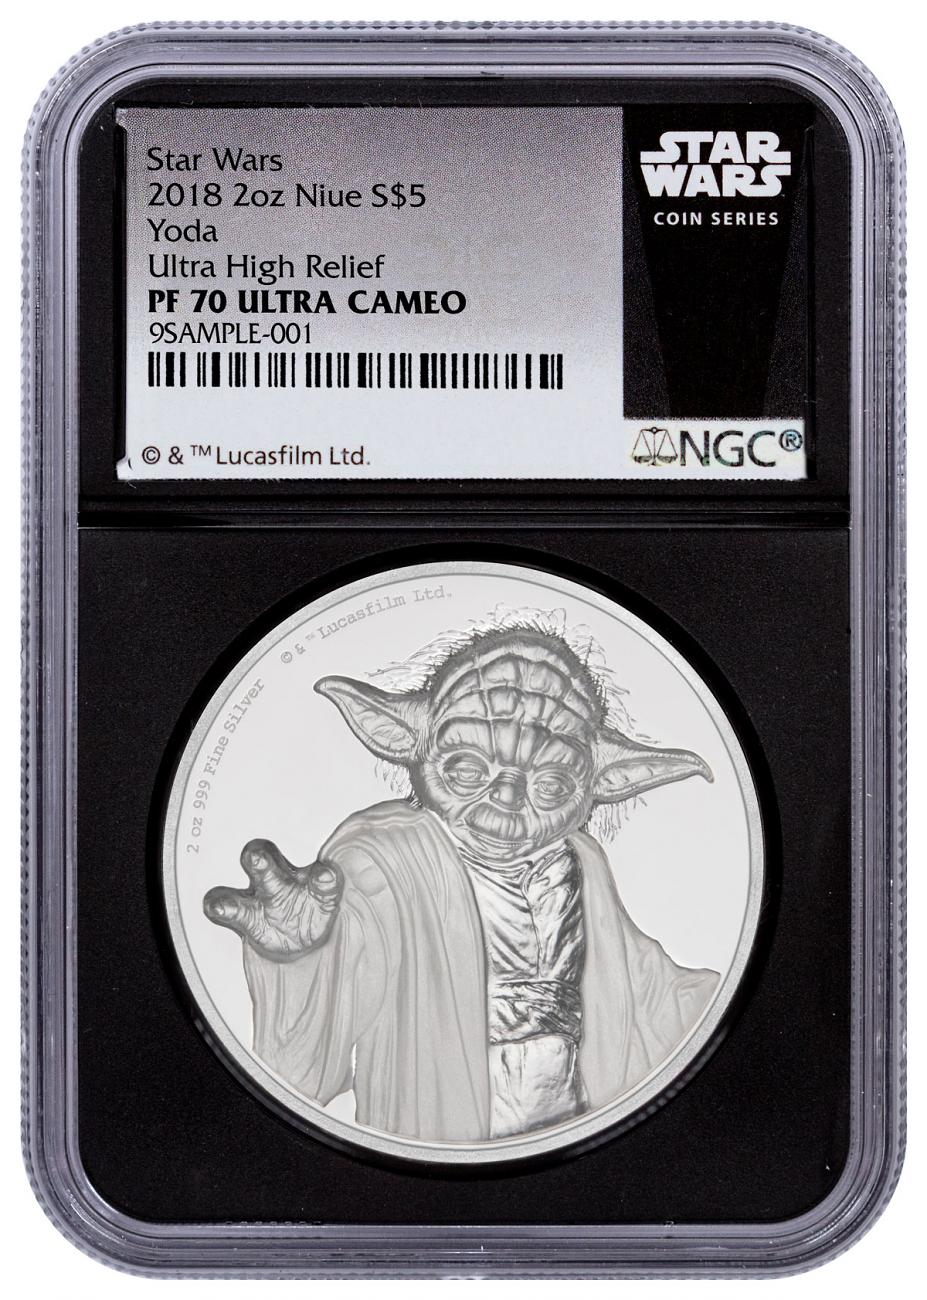 2018 Niue Star Wars - Yoda Ultra High Relief 2 oz Silver Proof $5 Coin NGC PF70 UC Black Core Holder Star Wars Label